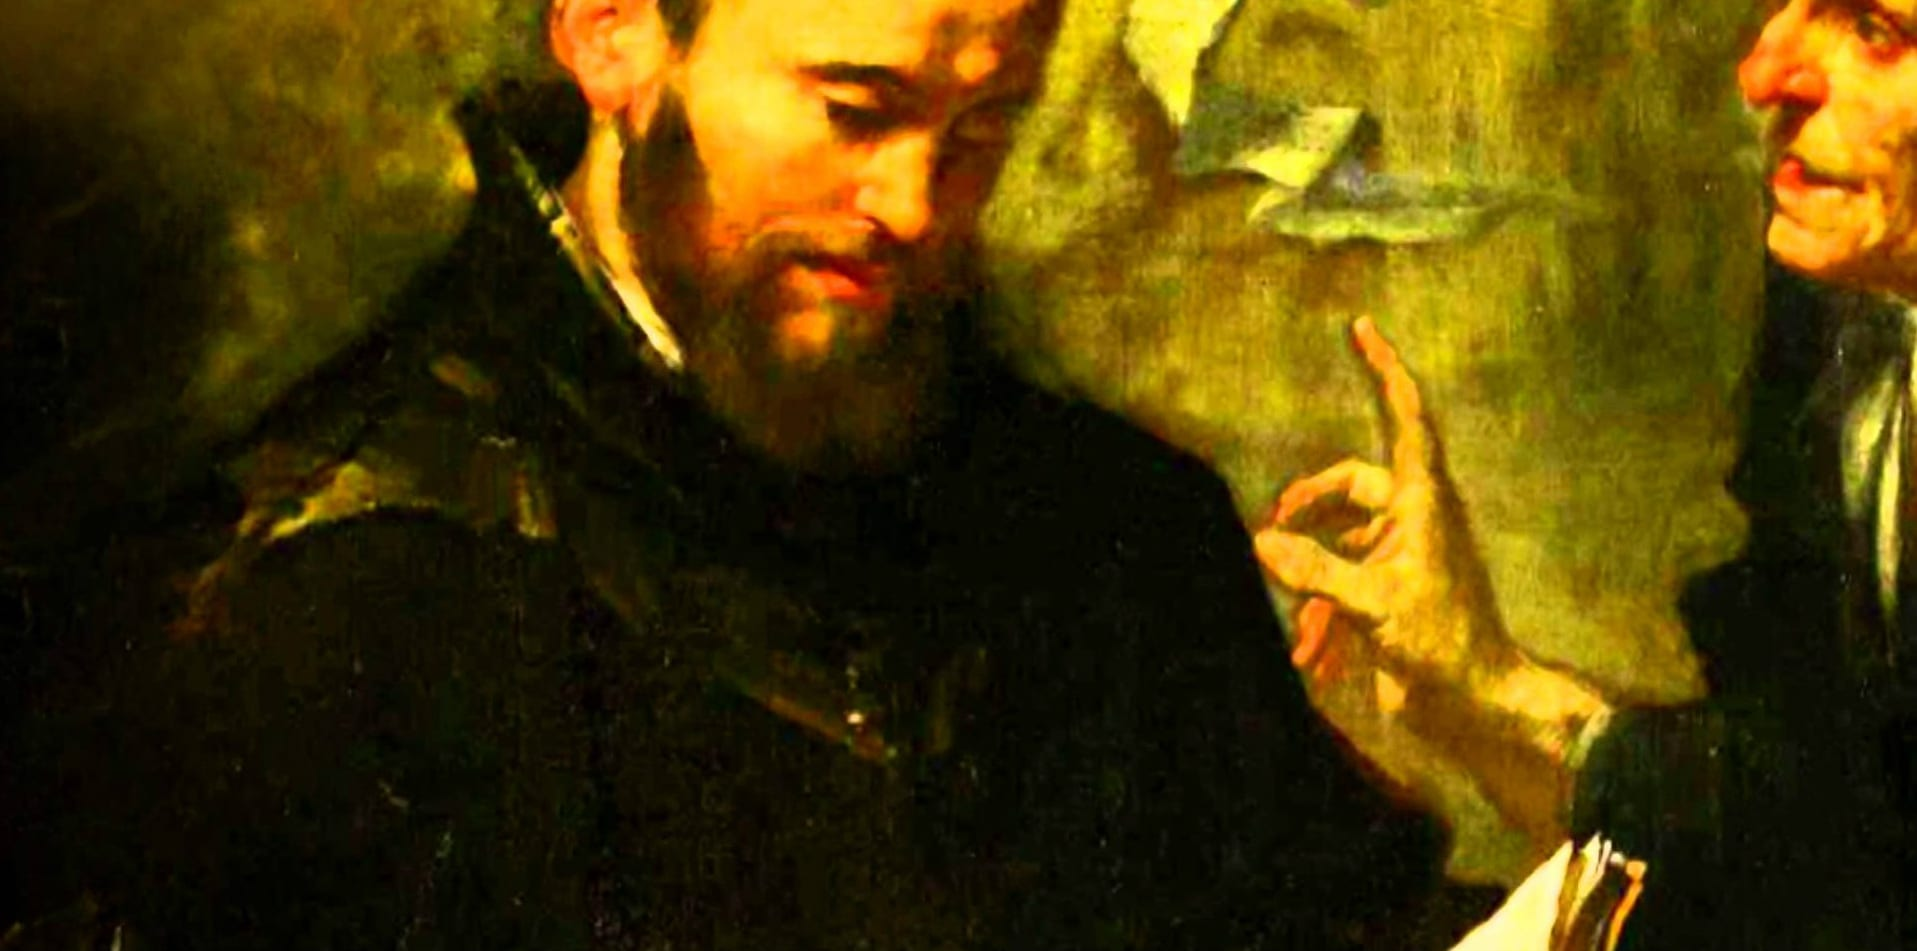 late have I loved you beauty so ancient & so new feast of St. Augustine august 28 peace pant